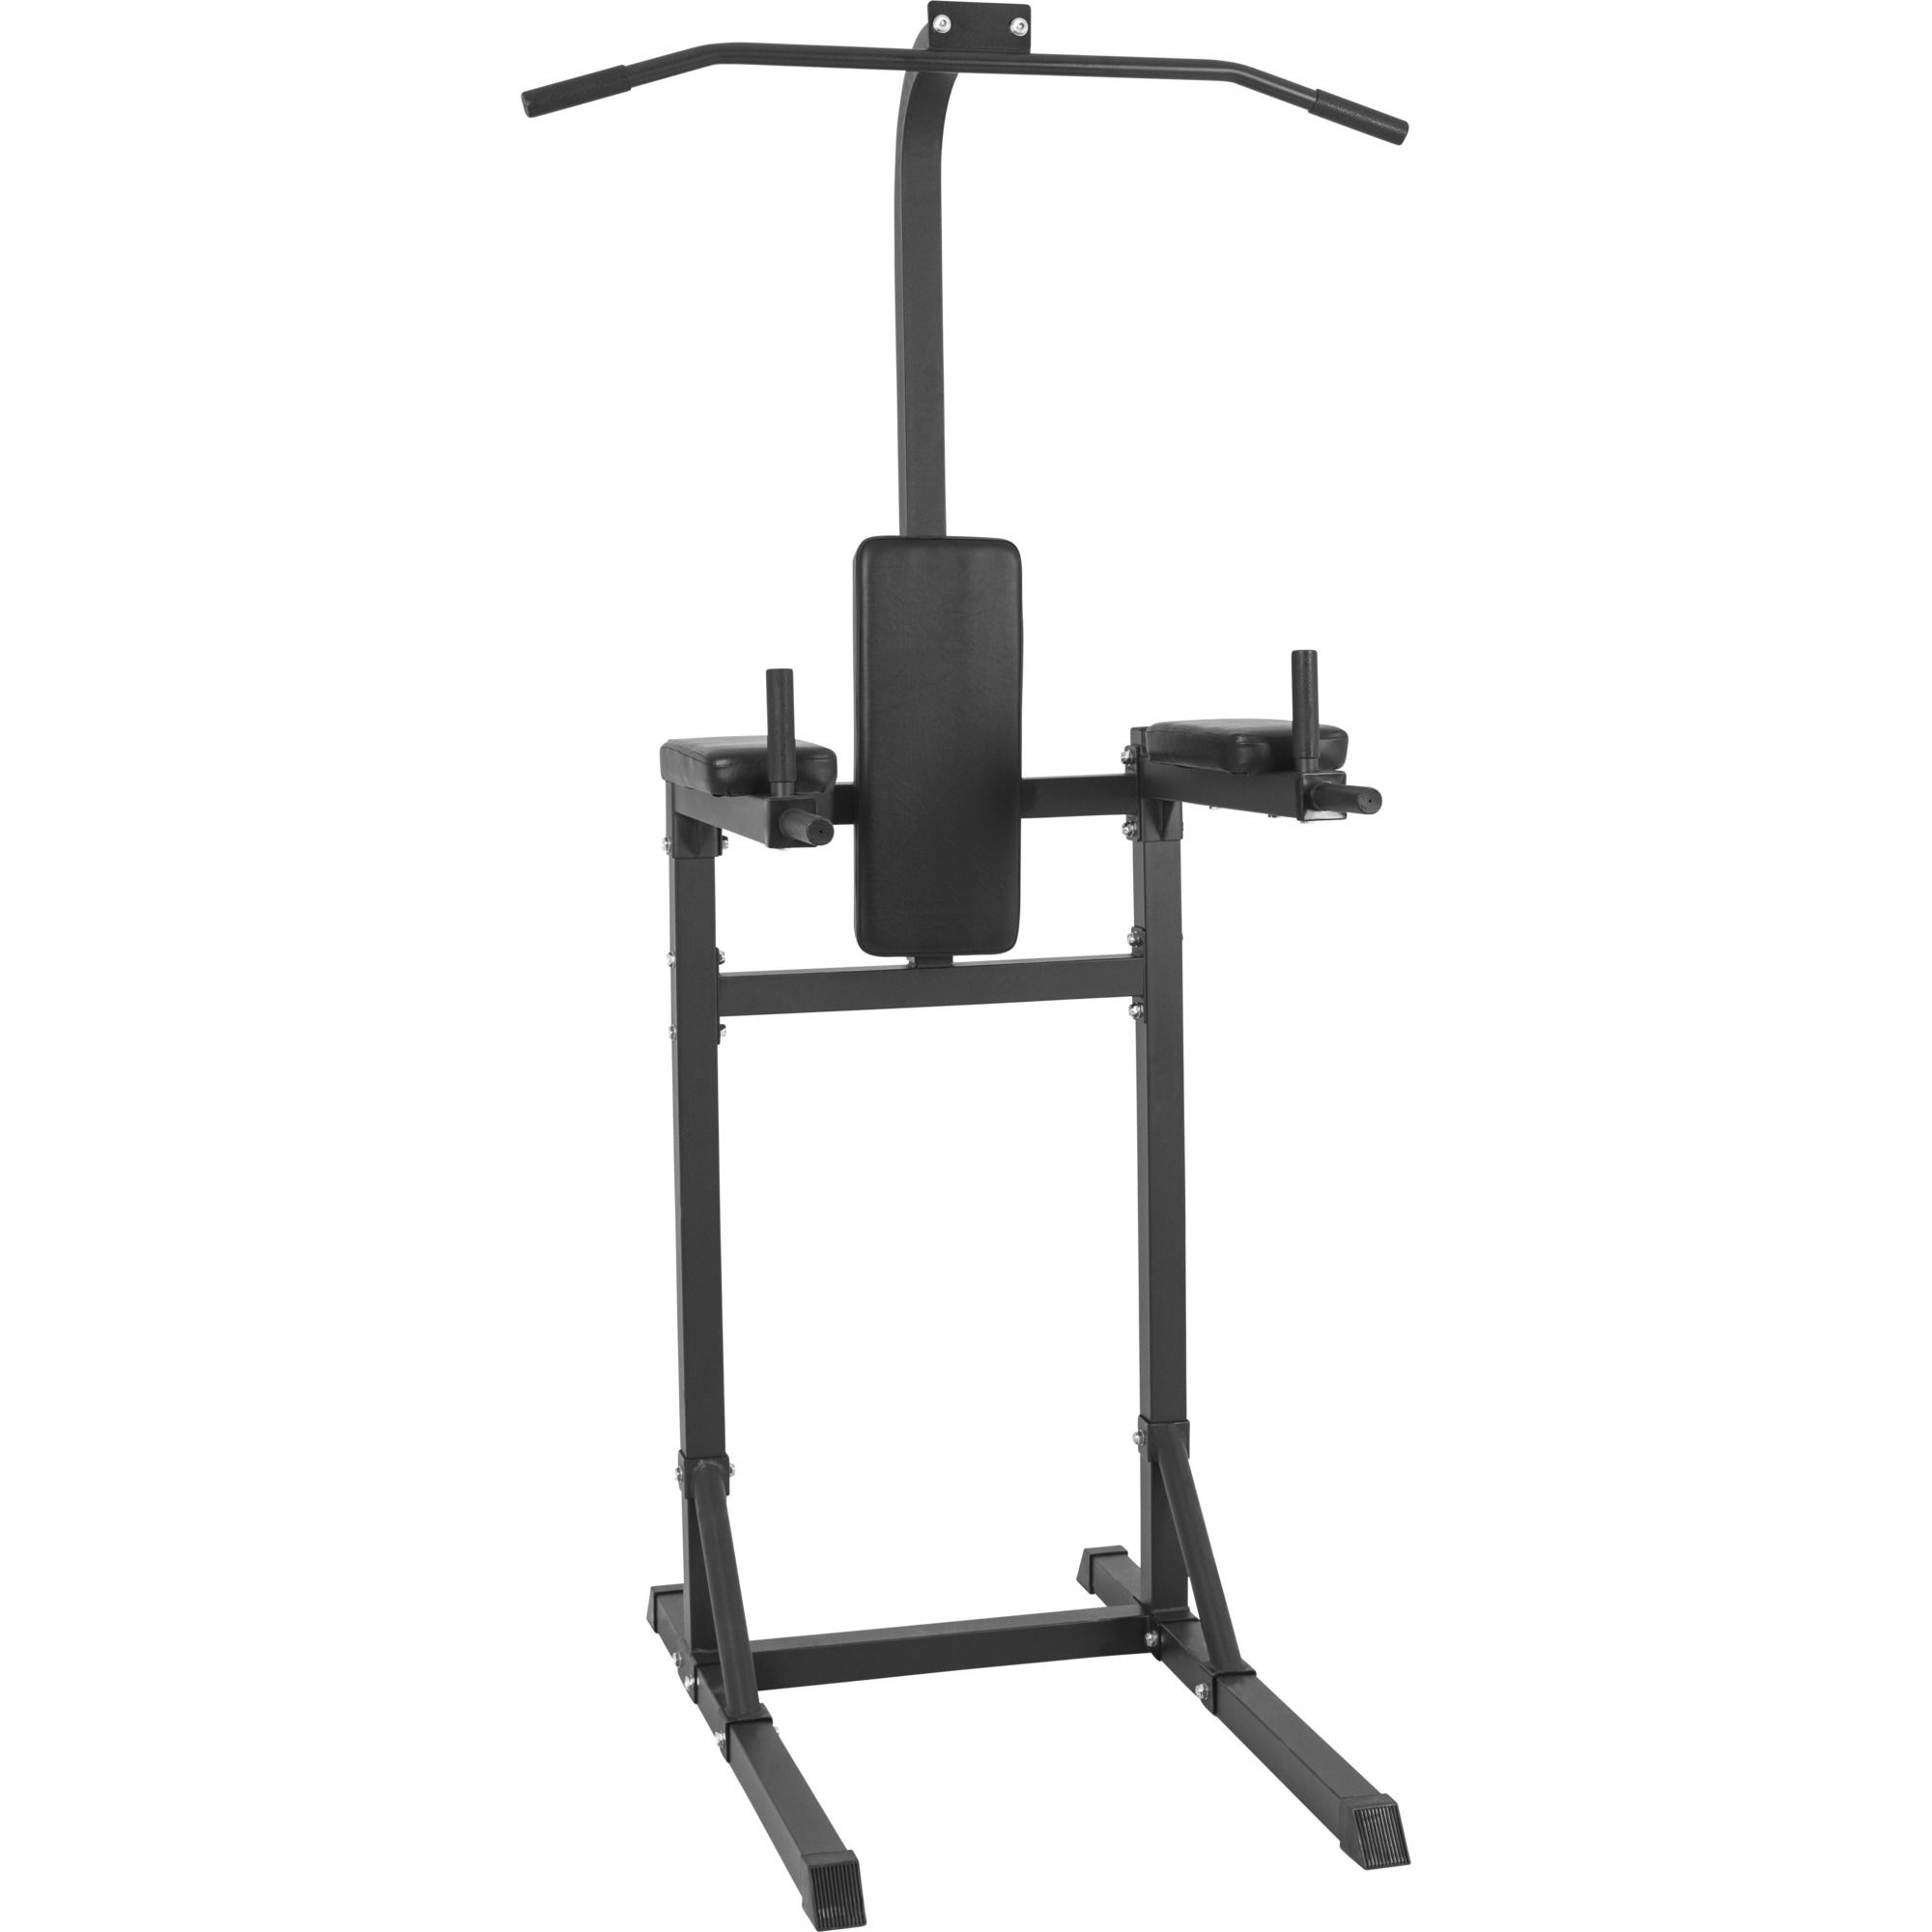 Station pour tractions chaise romaine noir 100127 00019 0001 - Chaise romaine fitness doctor razor cut ...